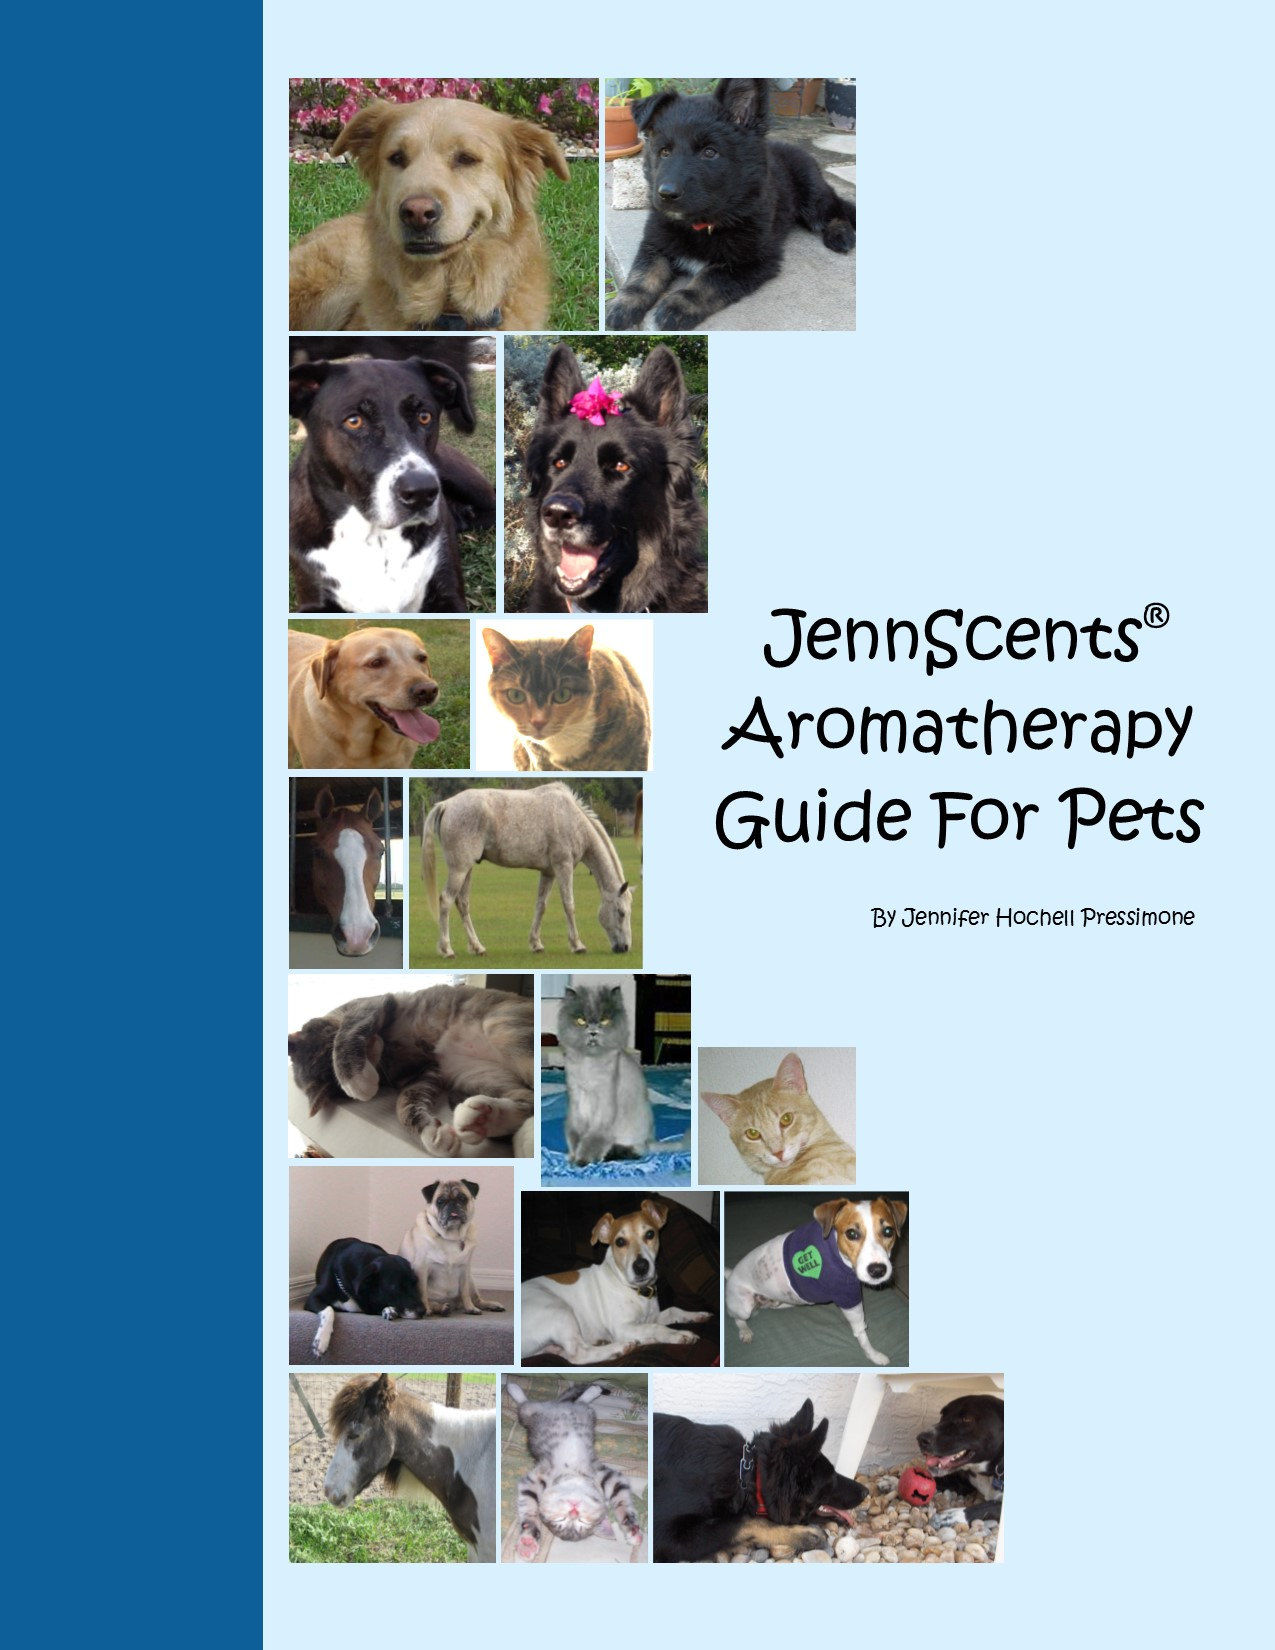 JennScents Aromatherapy Guide for Pets